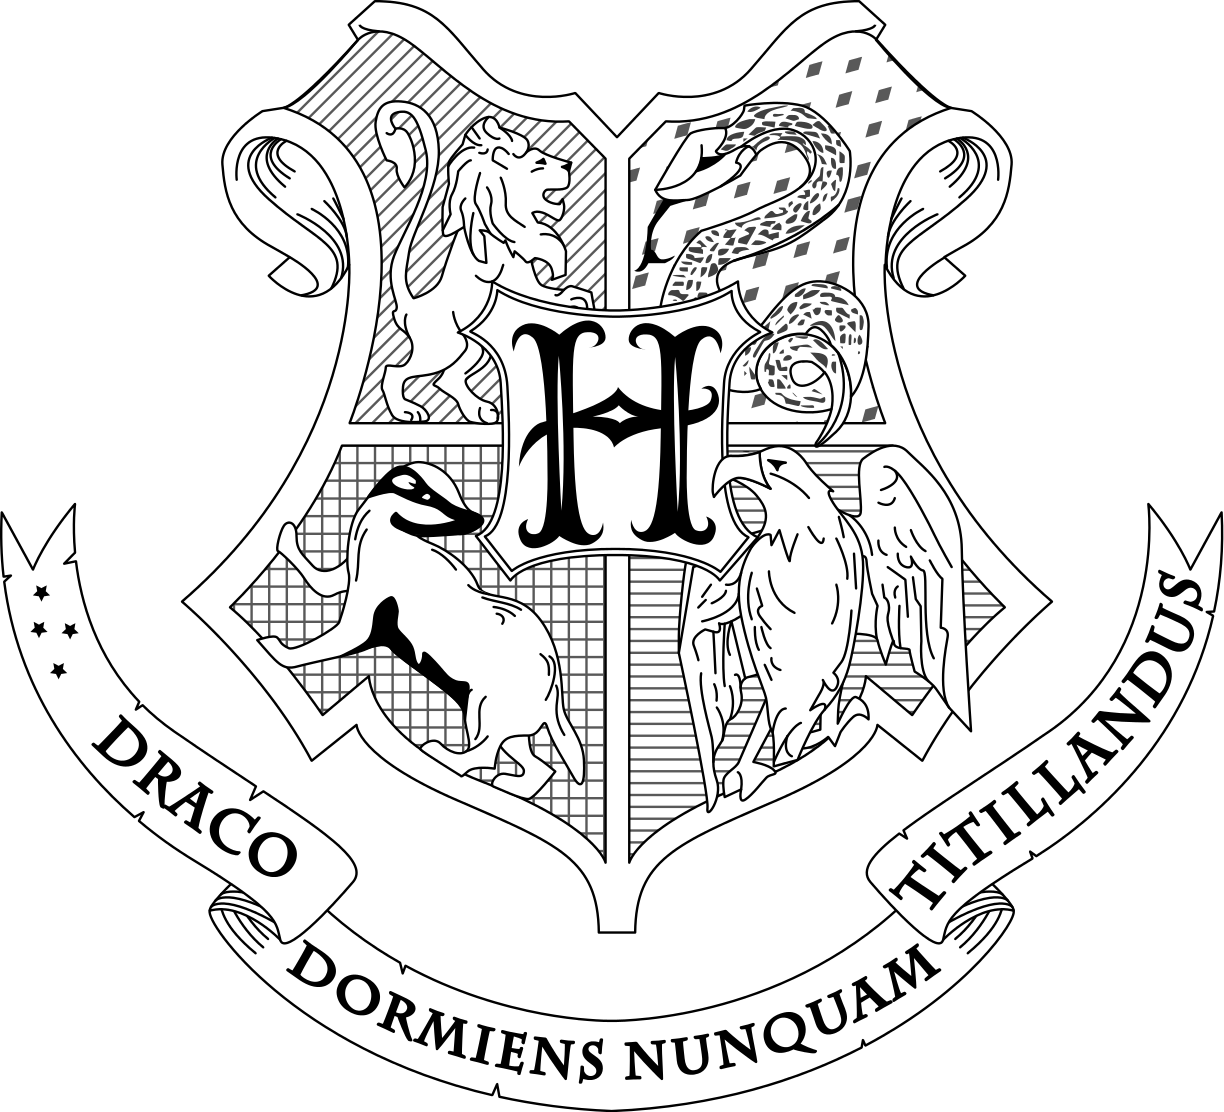 1224x1112 Hogwarts Coat Of Arms. Draco Dormiens Nunquam Titillandus